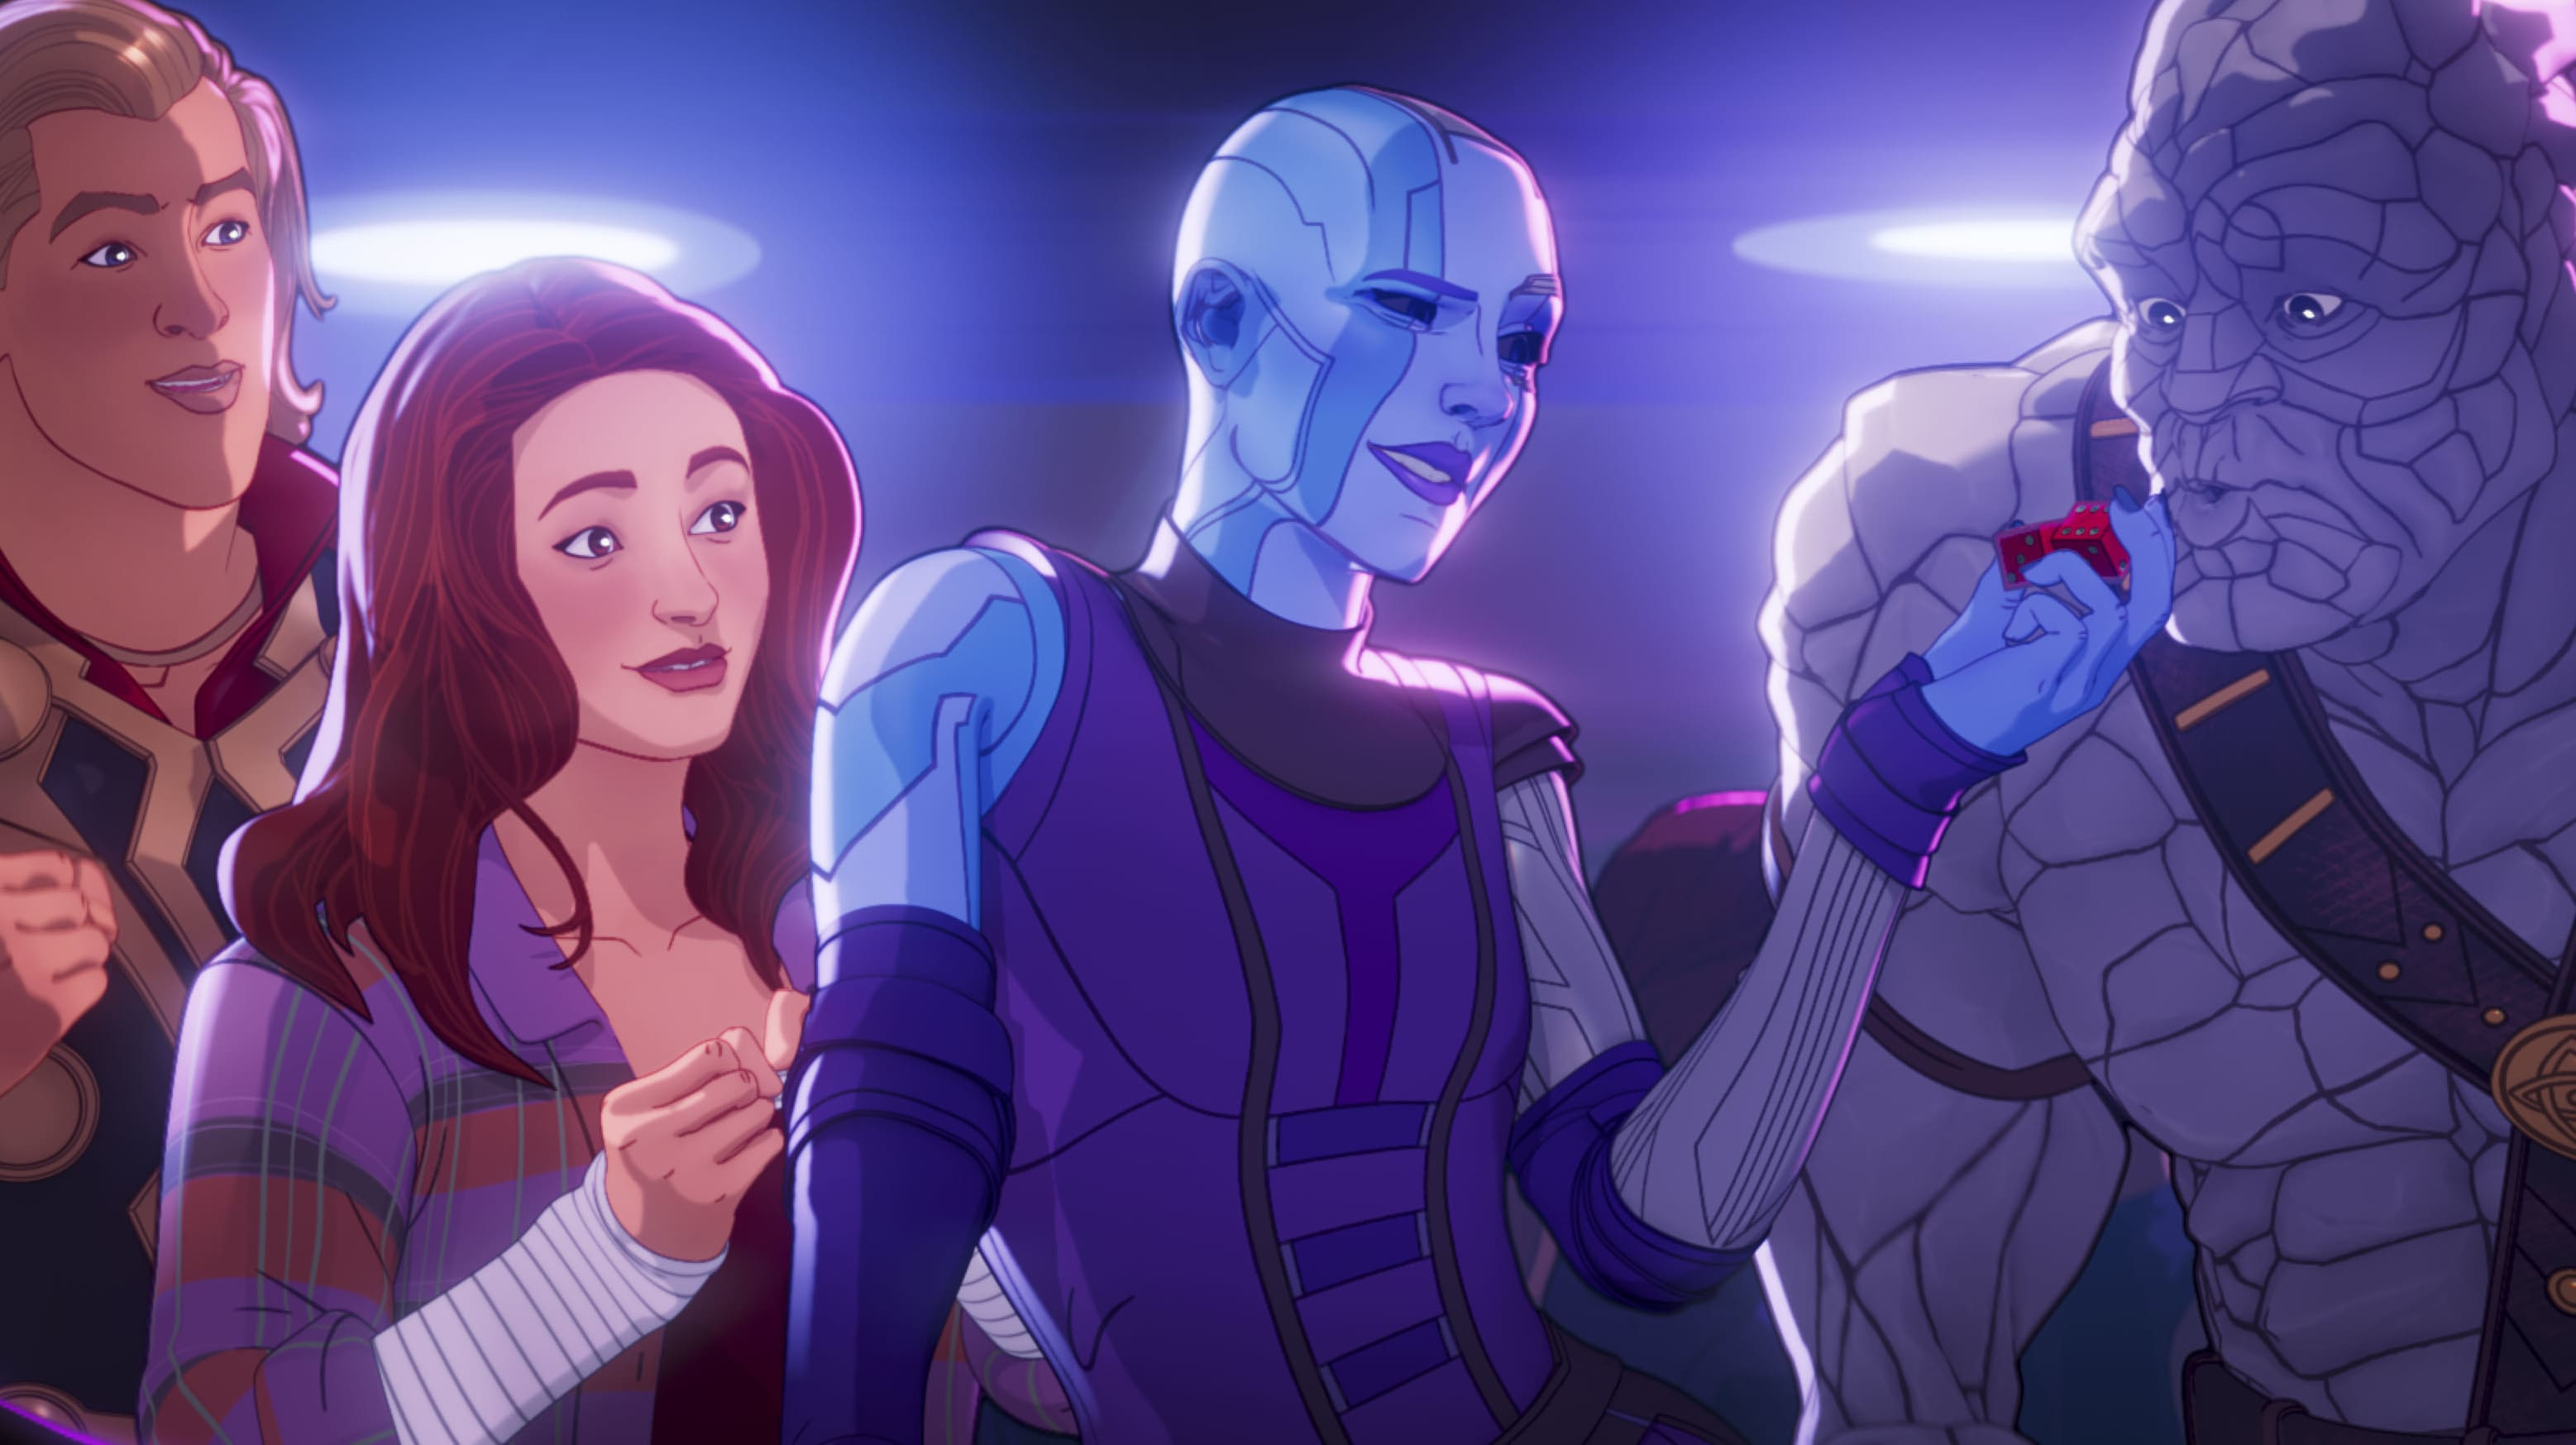 Party Thor, Jane Foster Nebula, and Korg in Marvel Studios' WHAT IF…? exclusively on Disney+. ©Marvel Studios 2021. All Rights Reserved.